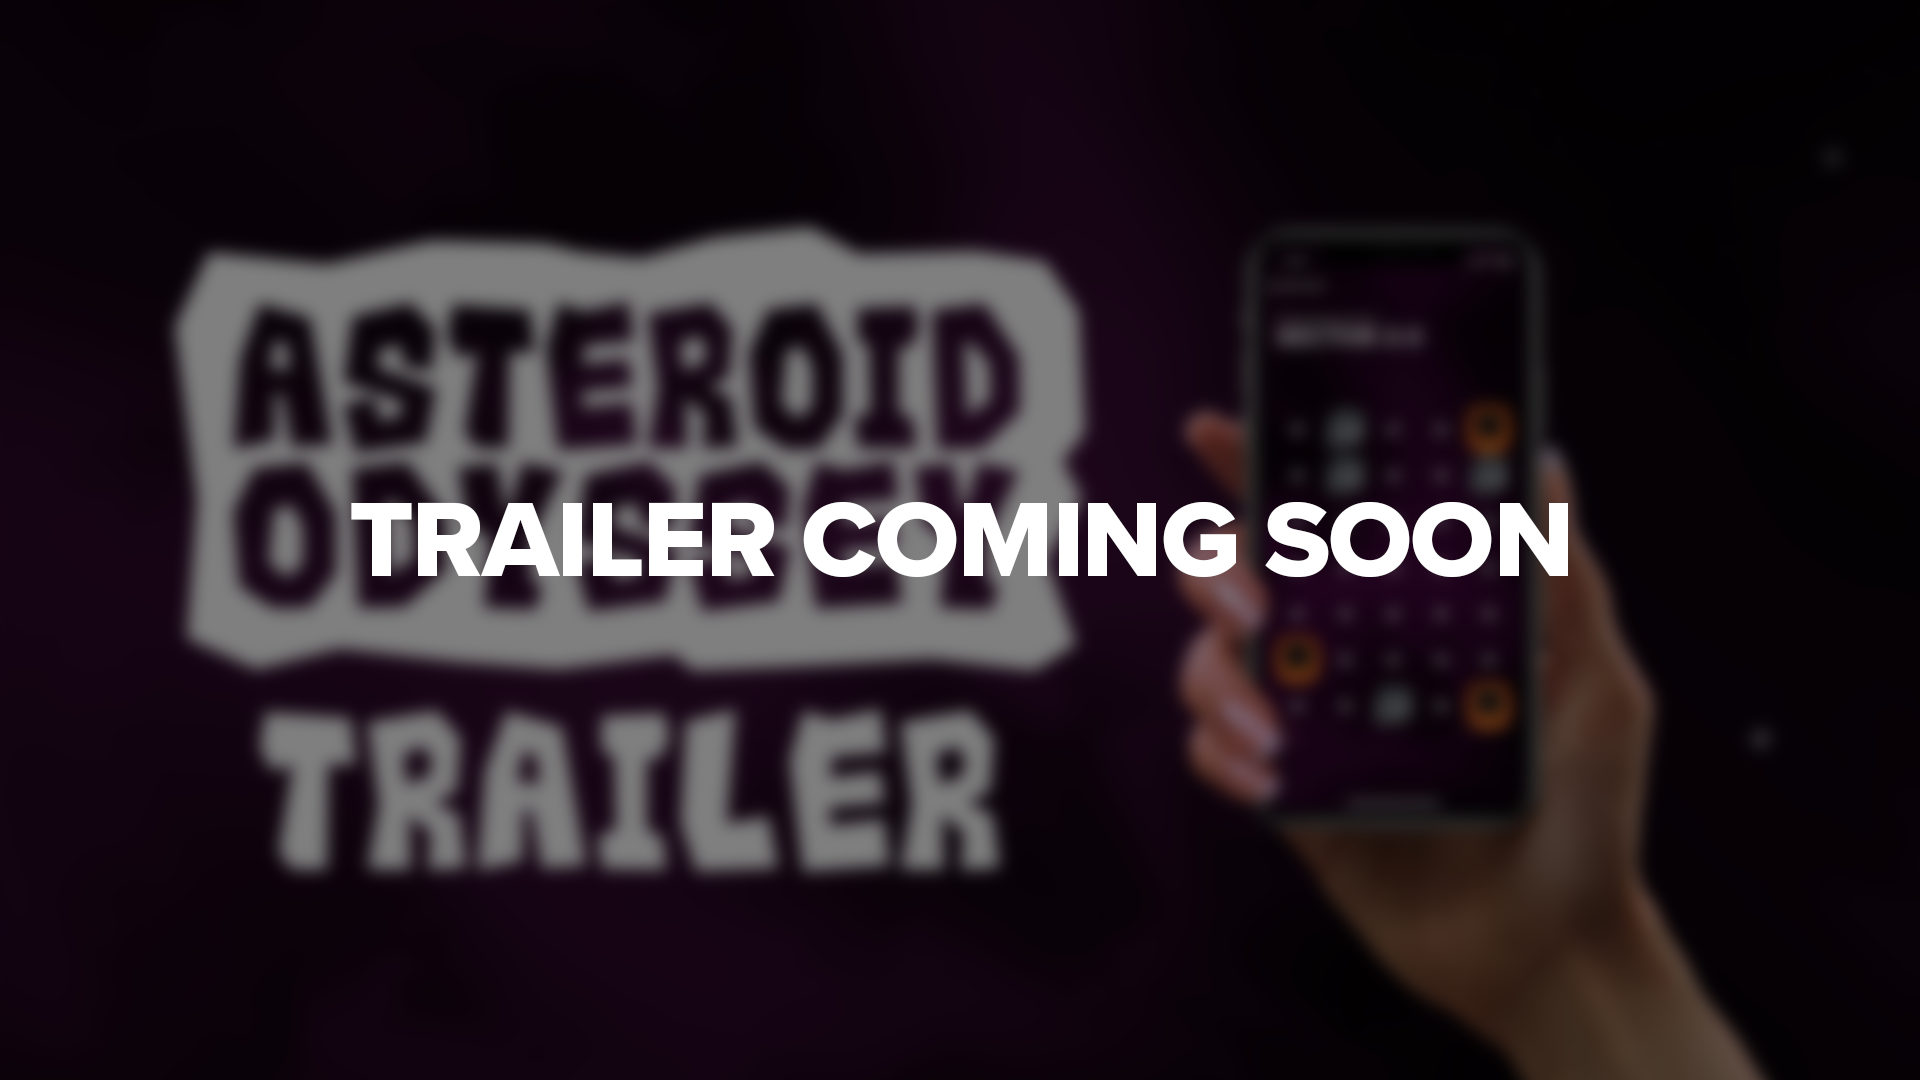 TrailerComingSoon.png